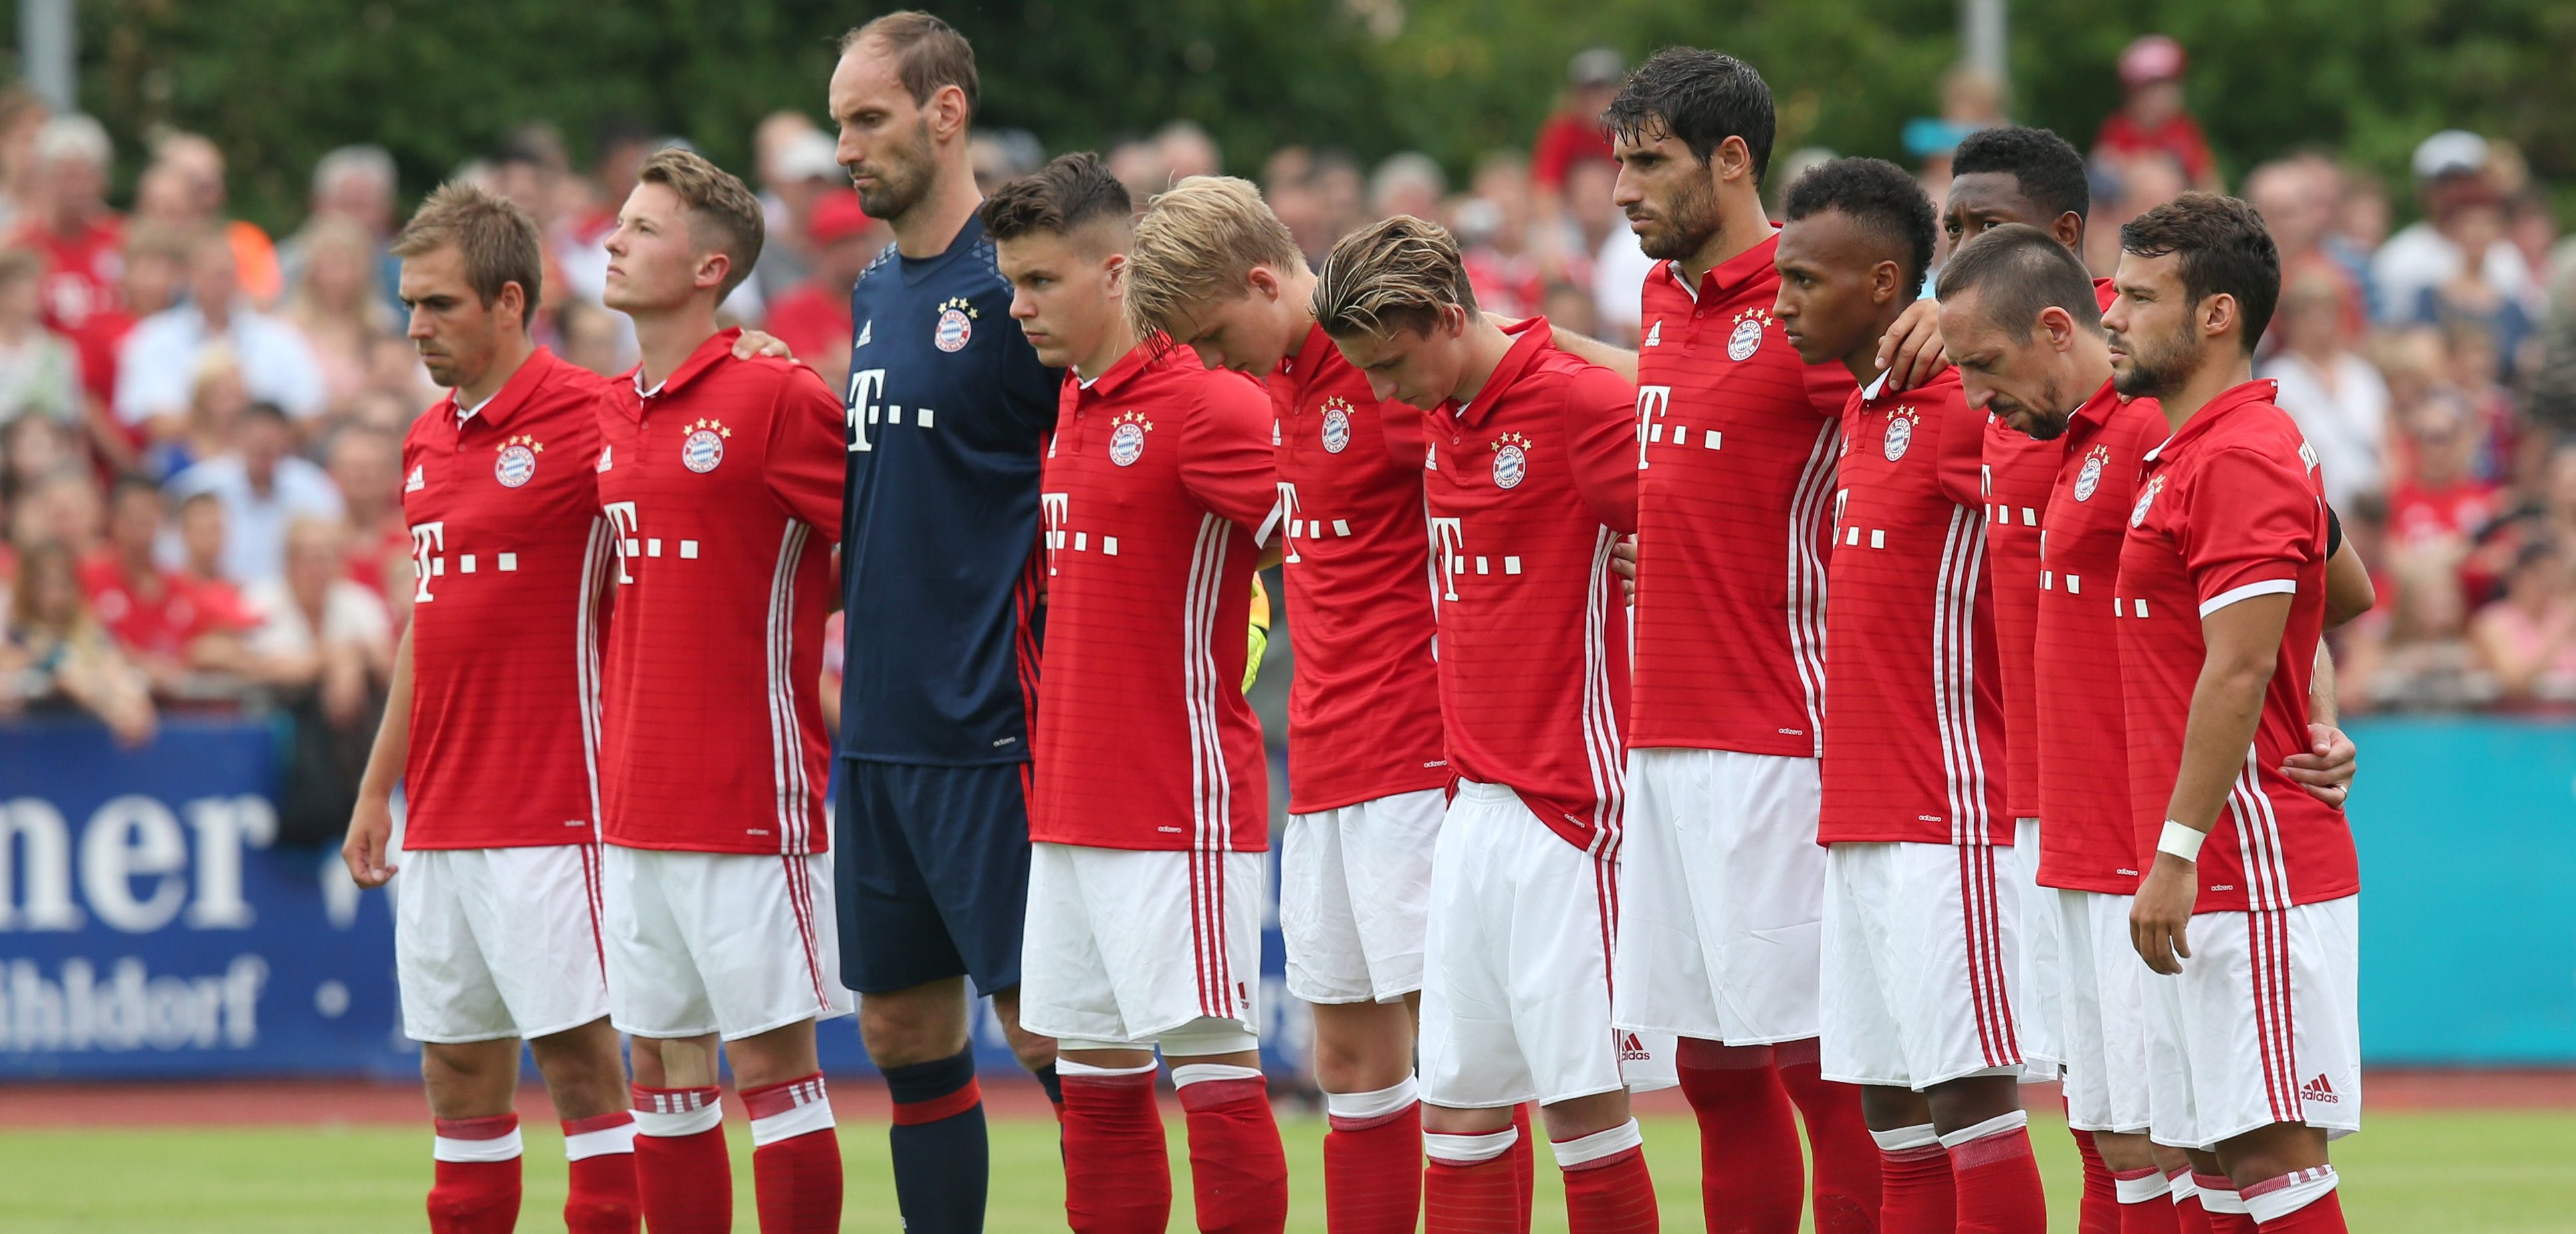 NIC031. Landshut (Germany), 23/07/2016.- FC Bayern Munich players observe a minute's silence for the victims of yesterday's shooting, before the test match against SpVgg Landshut at ebmpapst Stadium in Landshut, Germany, 23 July 2016. (Futbol, Amistoso, Alemania) EFE/EPA/DANIEL KARMANN